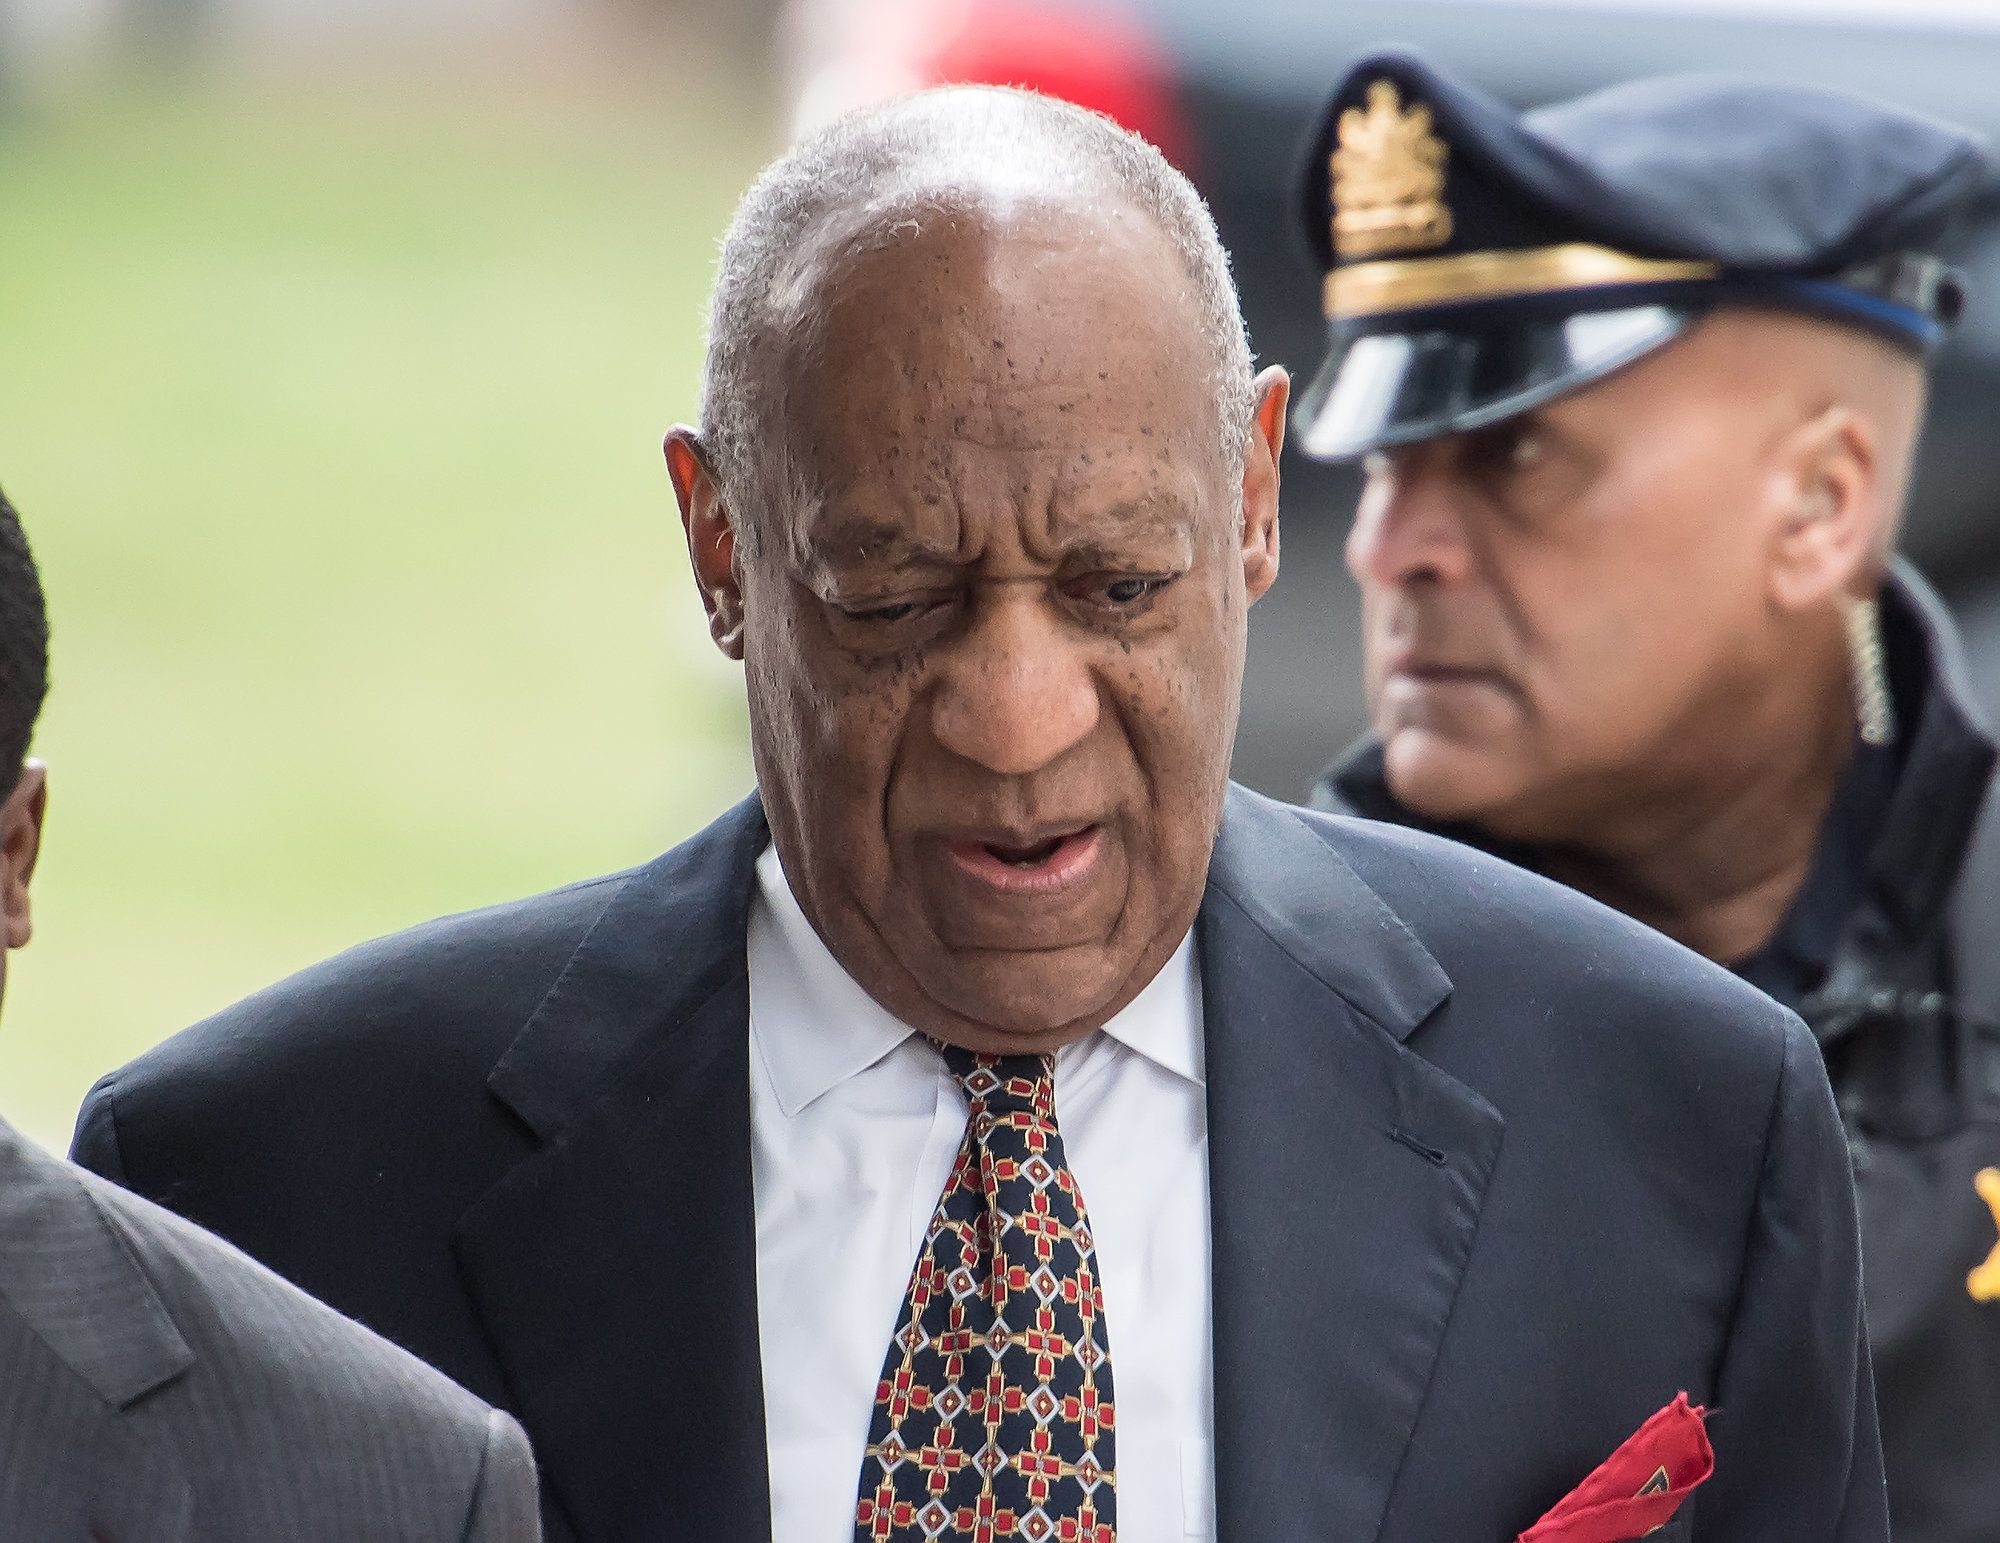 NORRISTOWN, PA - APRIL 13:  Actor/ stand-up comedian Bill Cosby arrives to Montgomery County Courthouse for the fifth day of his retrial for sexual assault charges on April 13, 2018 in Norristown, Pennsylvania. A former Temple University employee alleges that the entertainer drugged and molested her in 2004 at his home in suburban Philadelphia. More than 40 women have accused the 80 year old entertainer of sexual assault.  (Photo by Gilbert Carrasquillo/Getty Images)